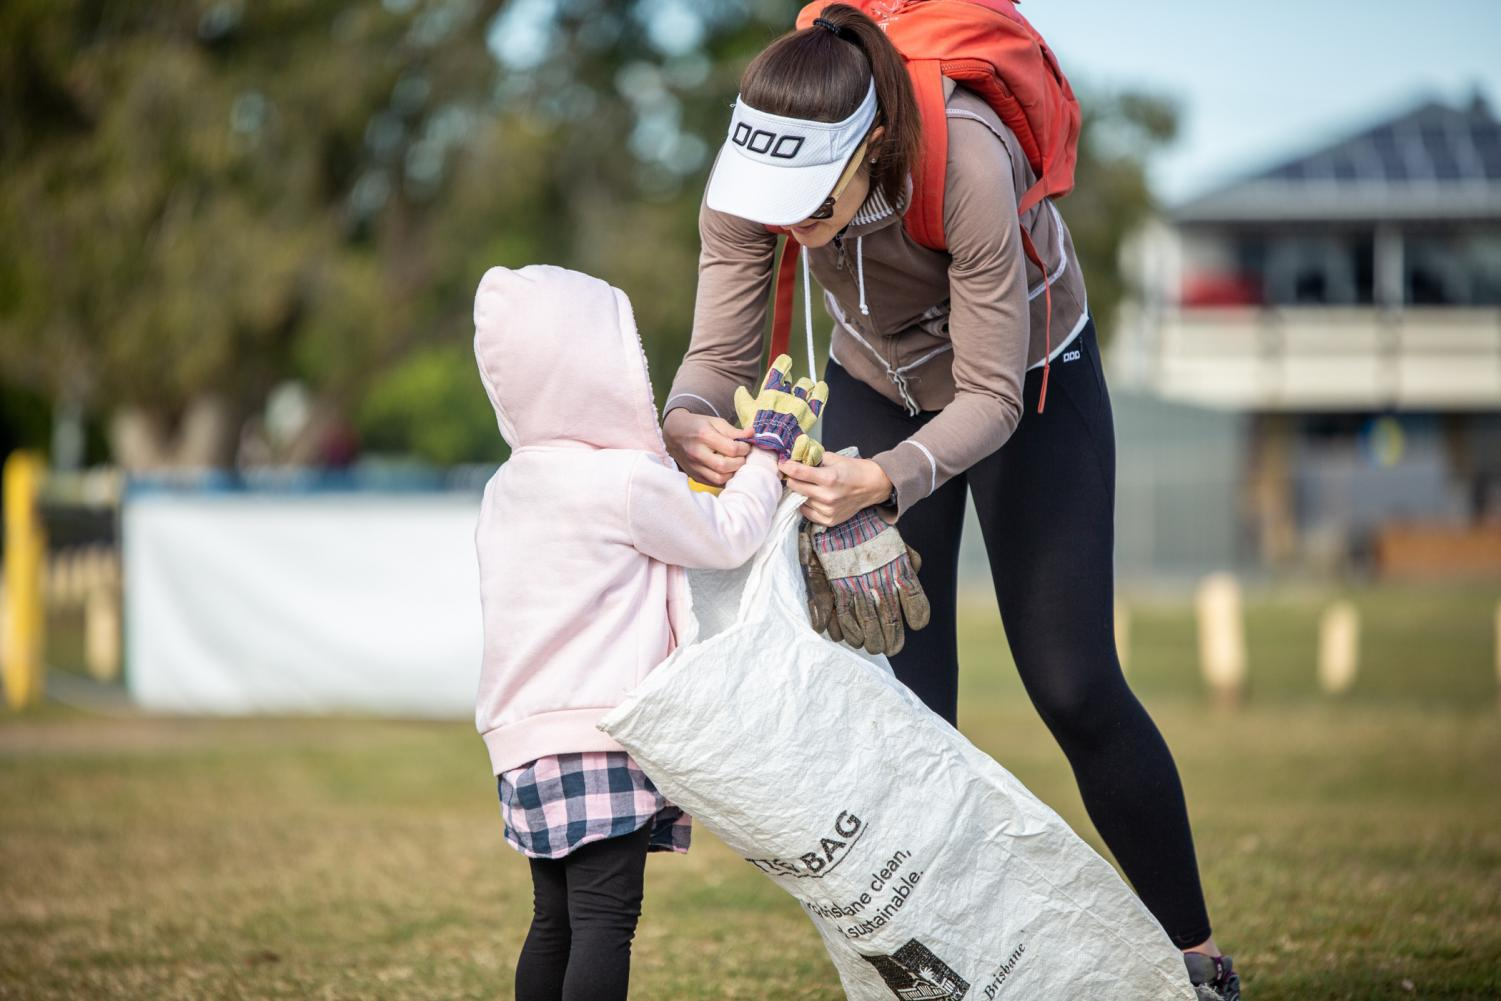 Volunteer mum placing gloves on young daughter